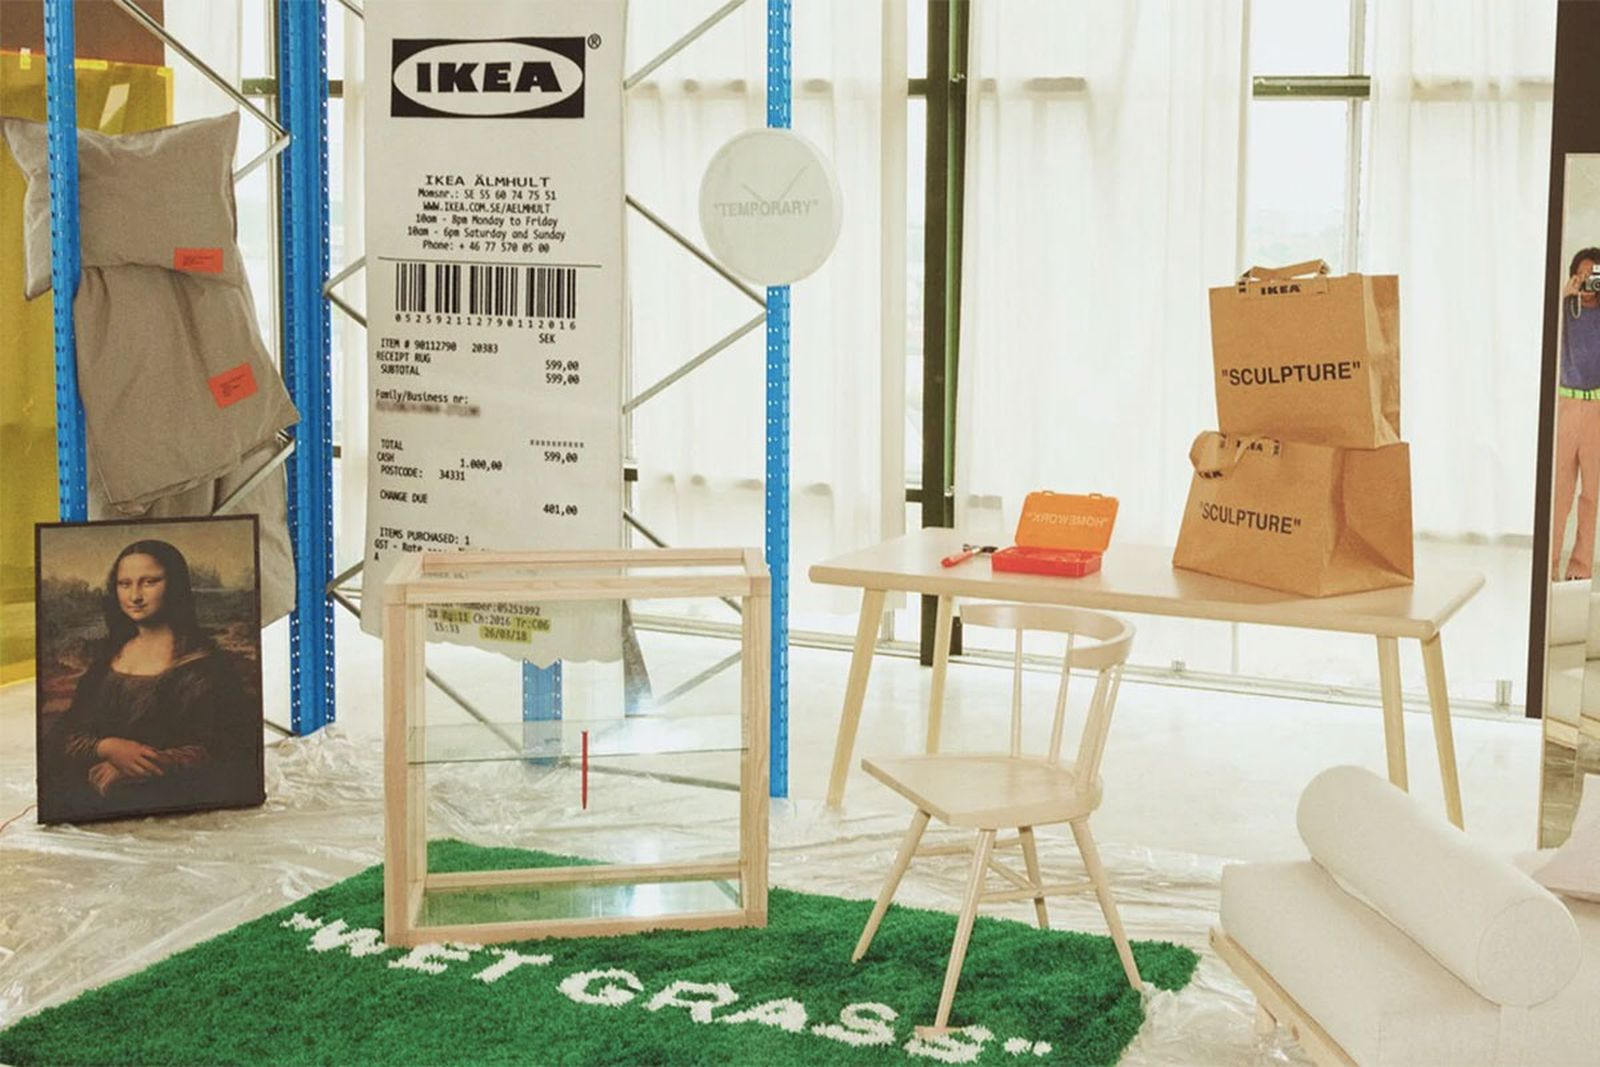 ikea-virgil-abloh-full-collection-000001